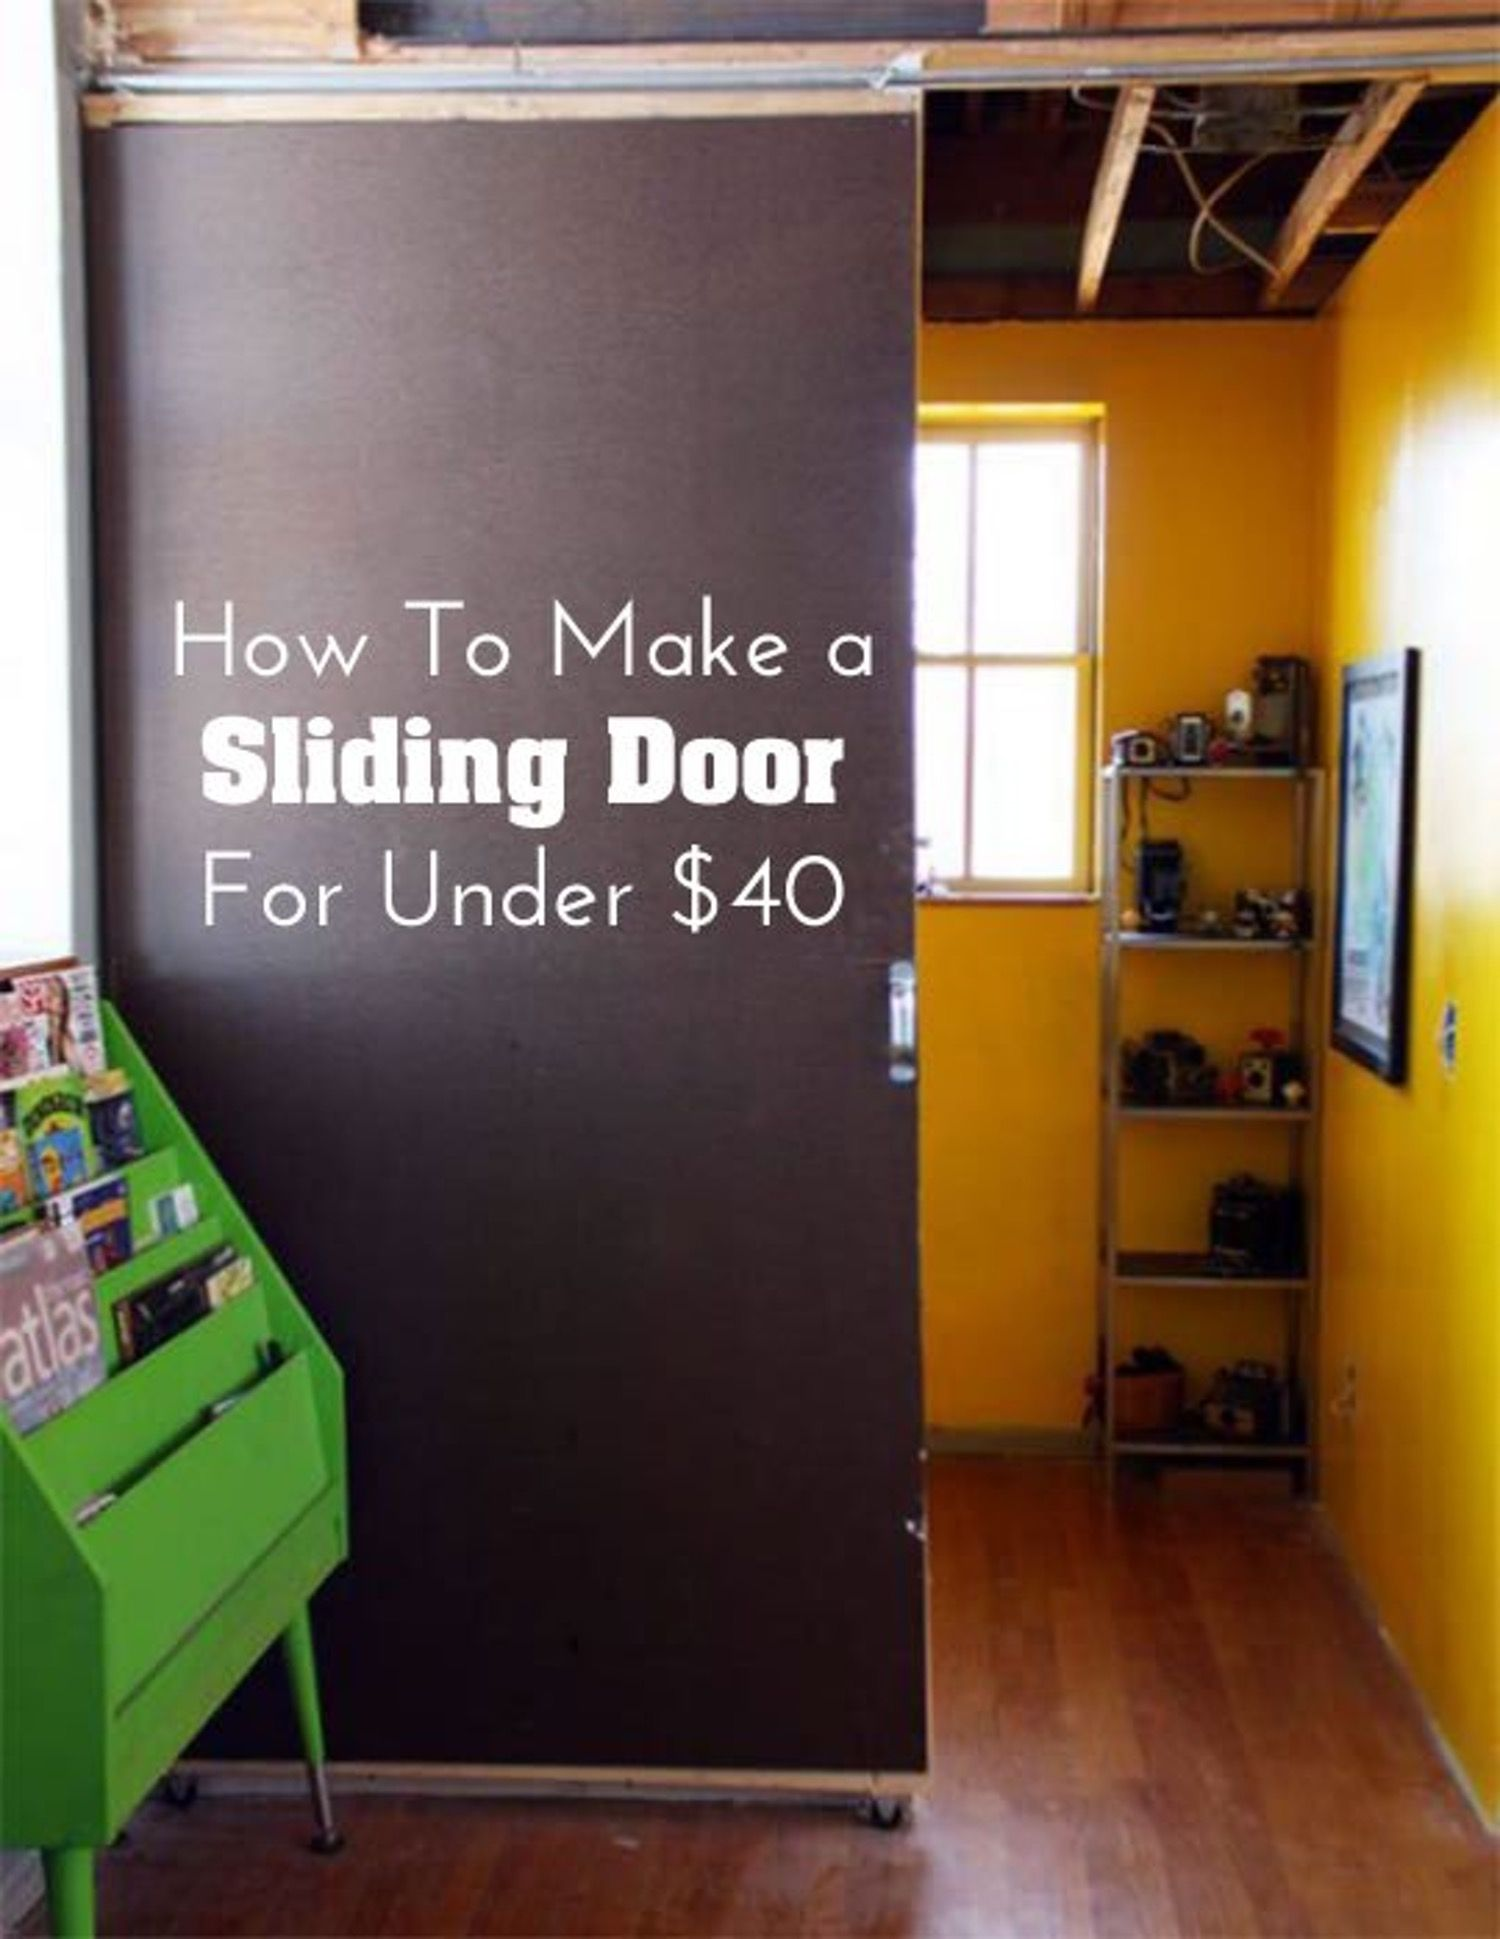 Diy Home Decor How To Make A Sliding Door For Under 40 Apartment Therapy Tutorial